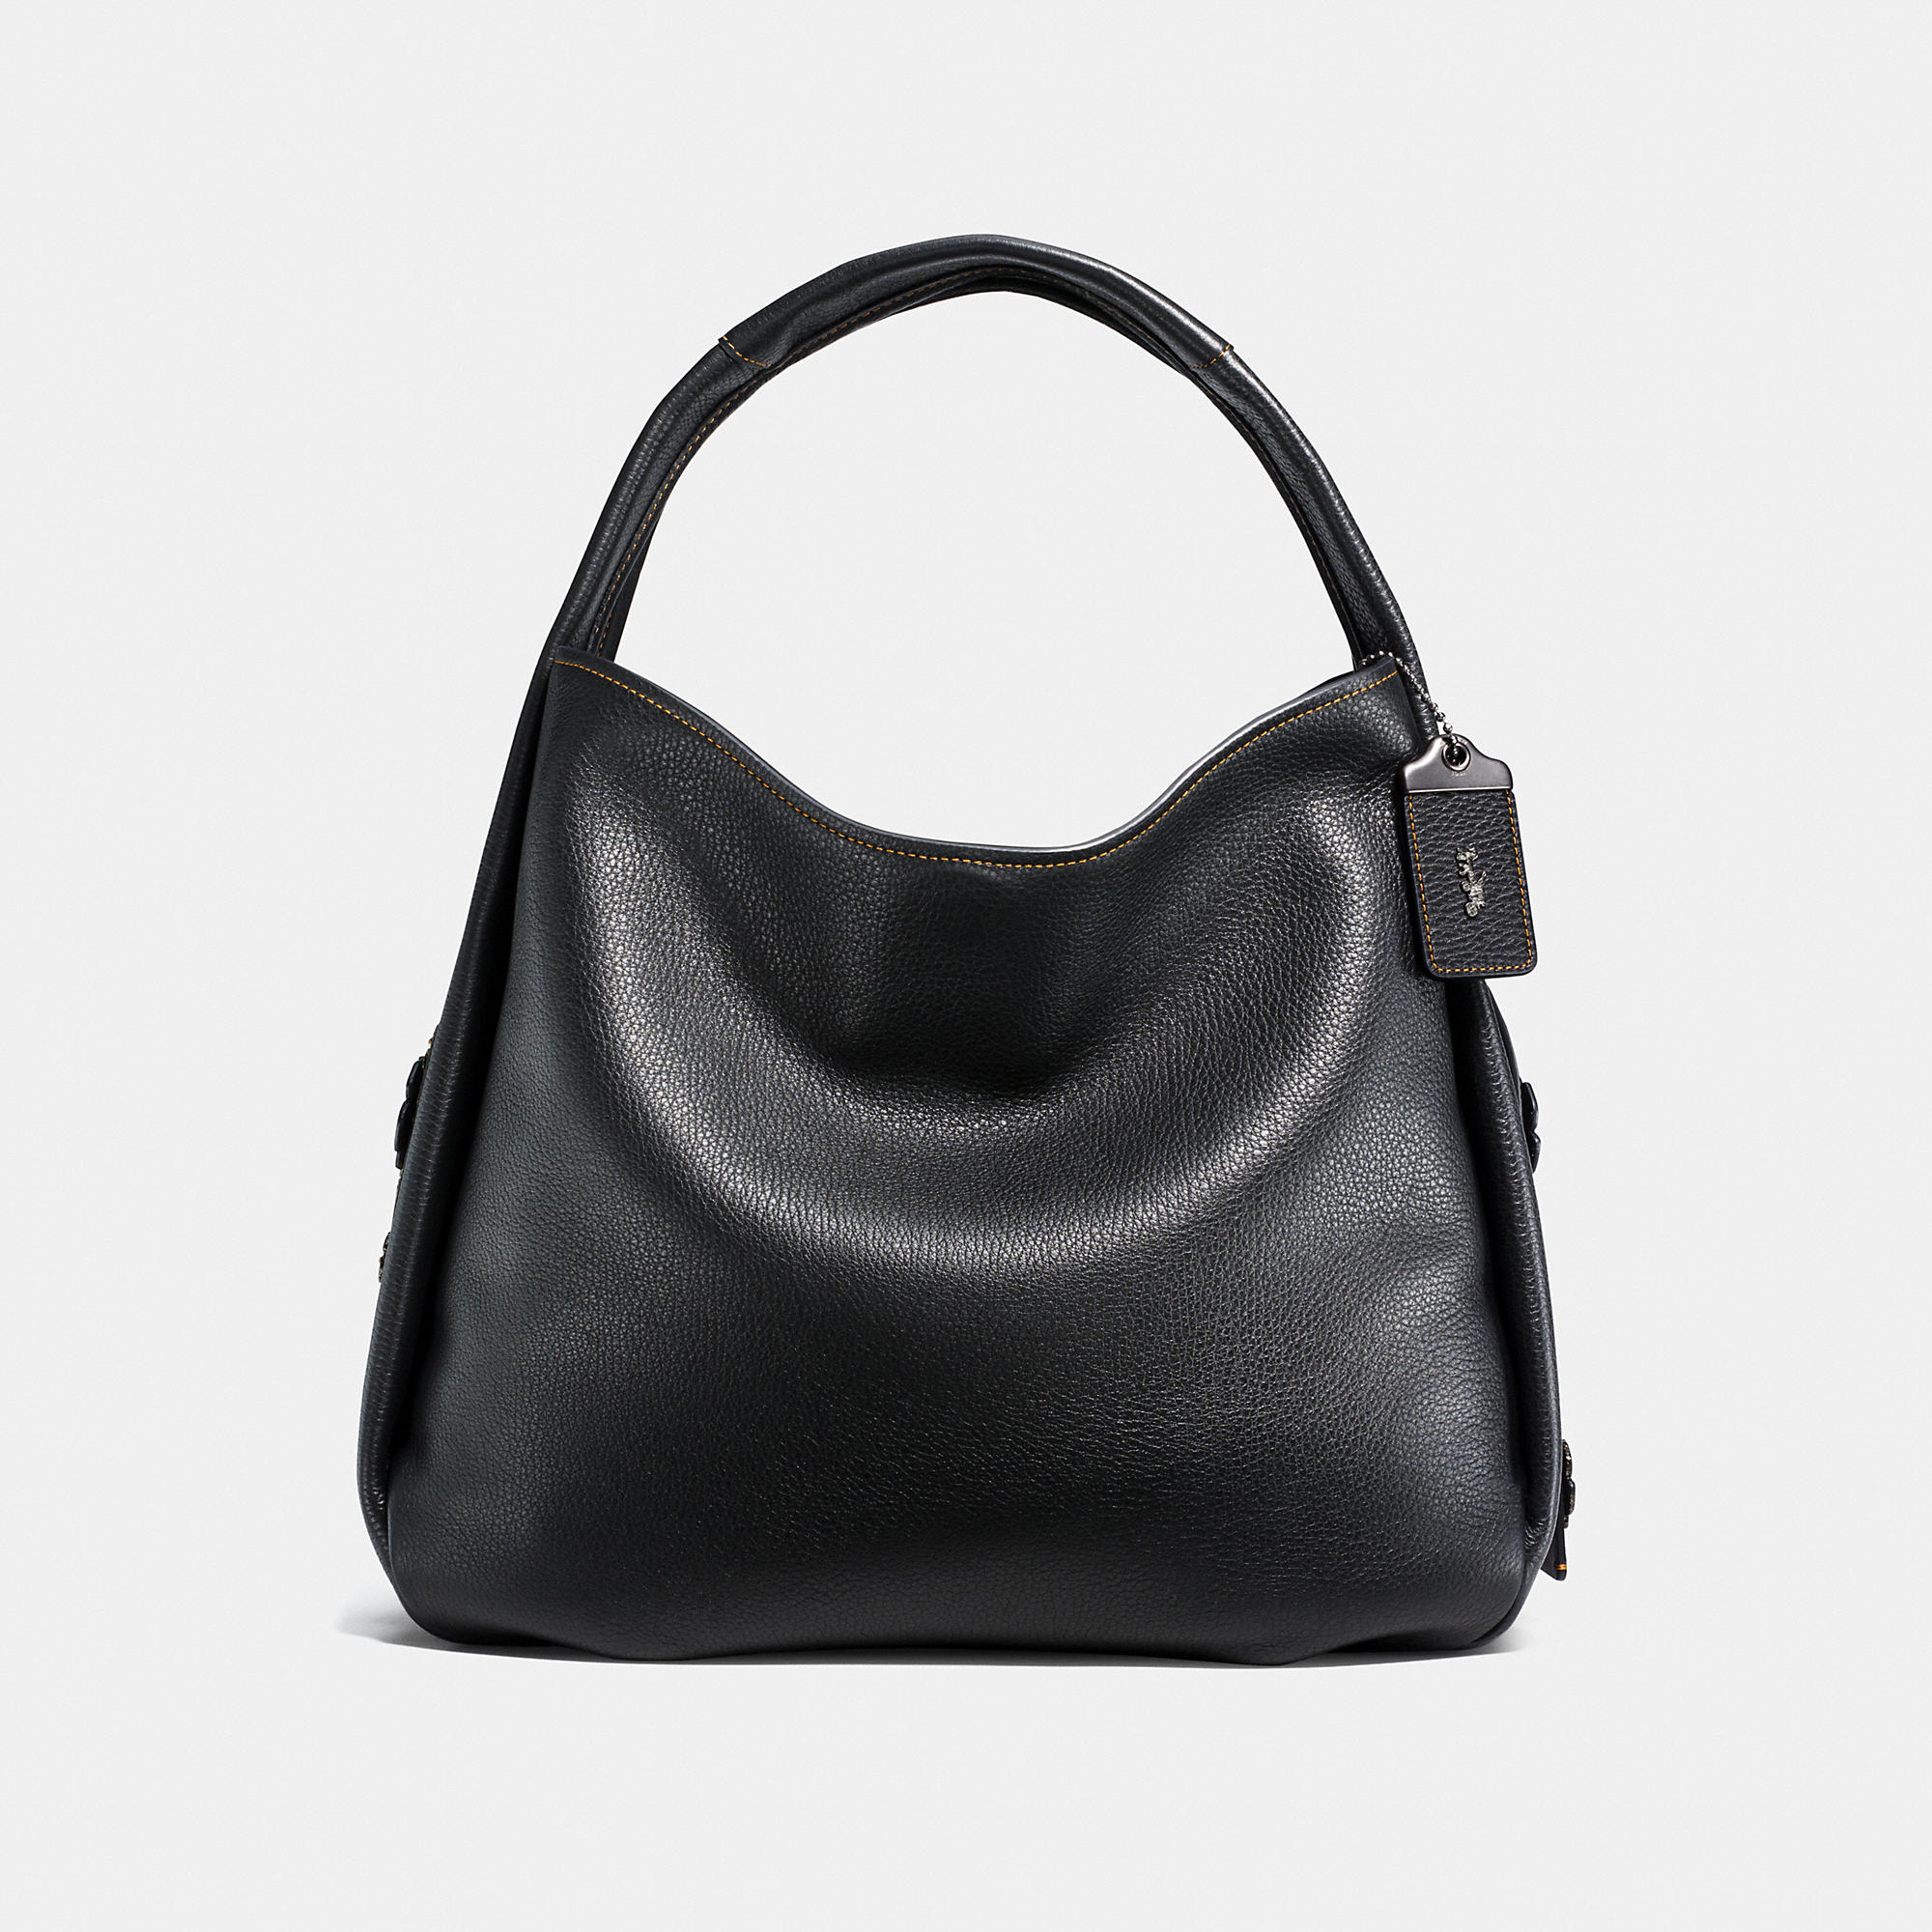 Coach Bandit Hobo 39 In Natural Pebble Leather With Tooled Tea Rose